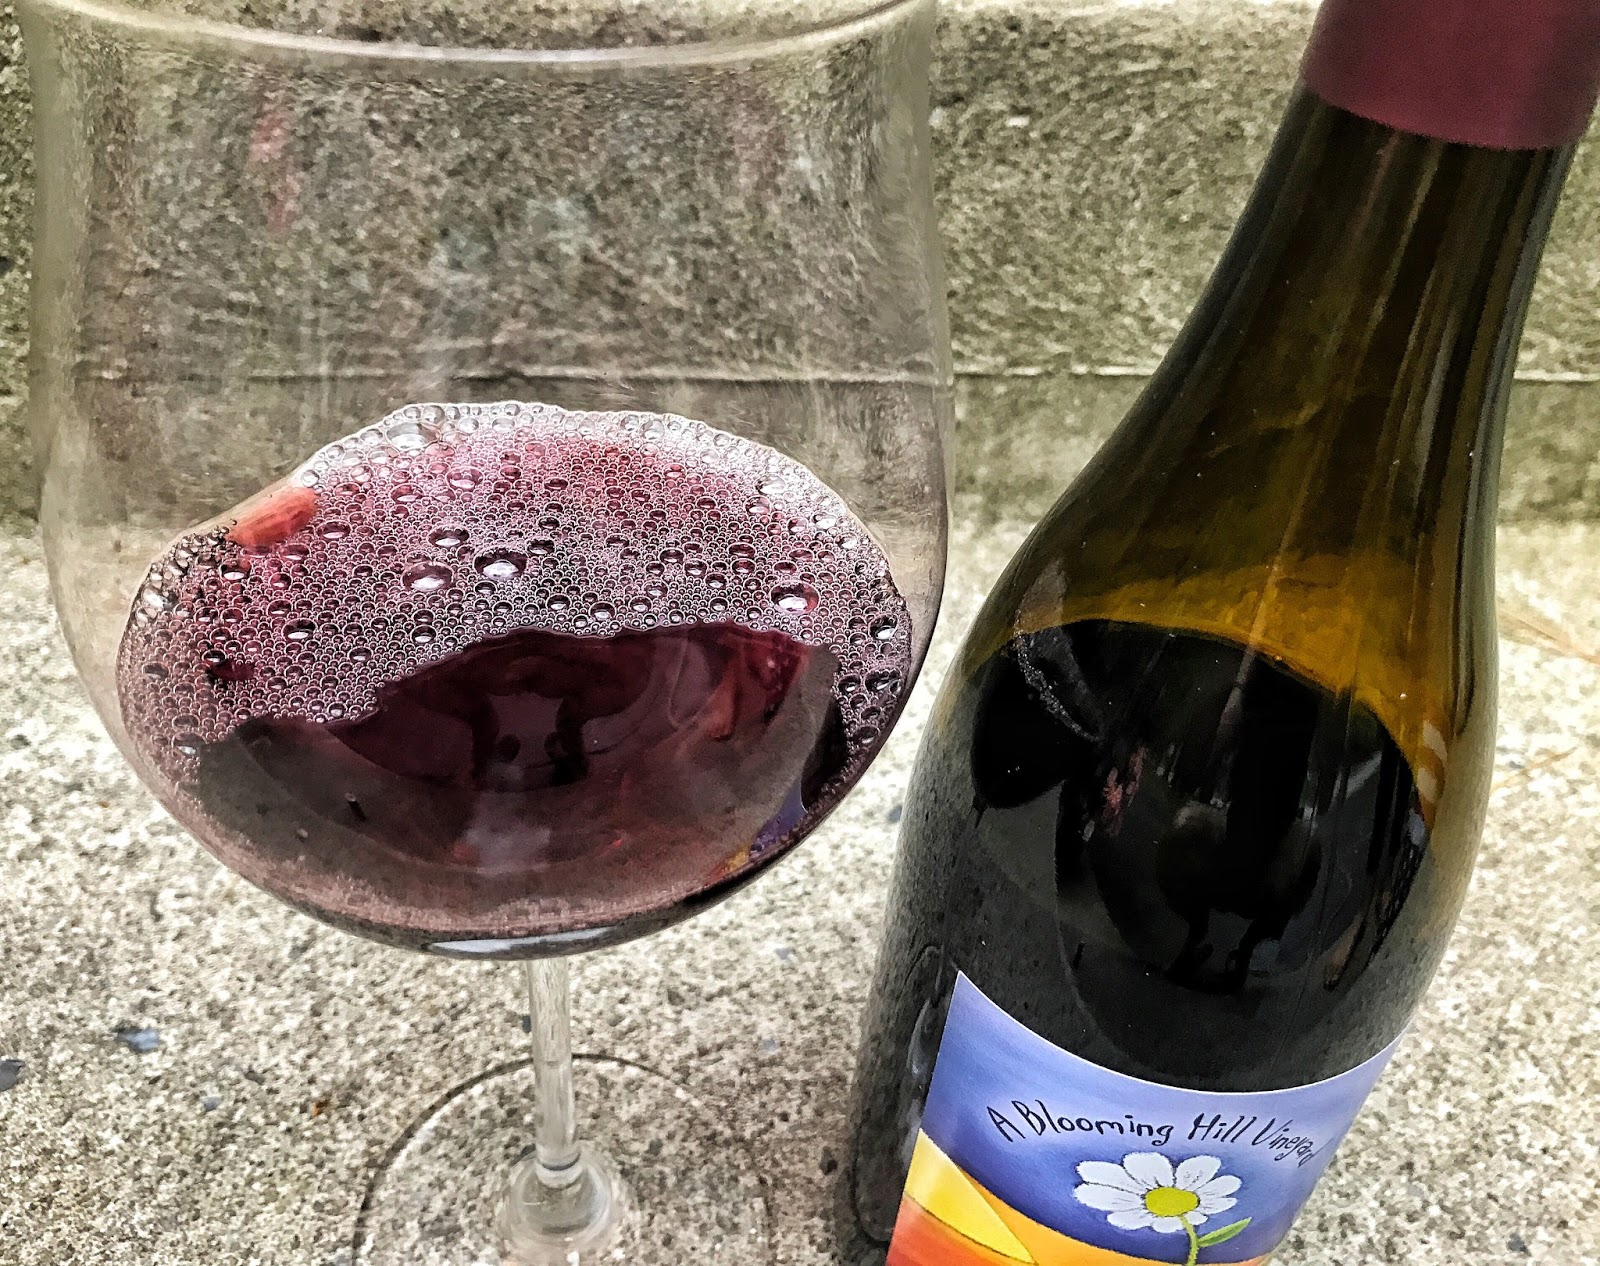 The Nittany Epicurean: 2014 A Blooming Hill Vineyard Pinot Noir Gemini